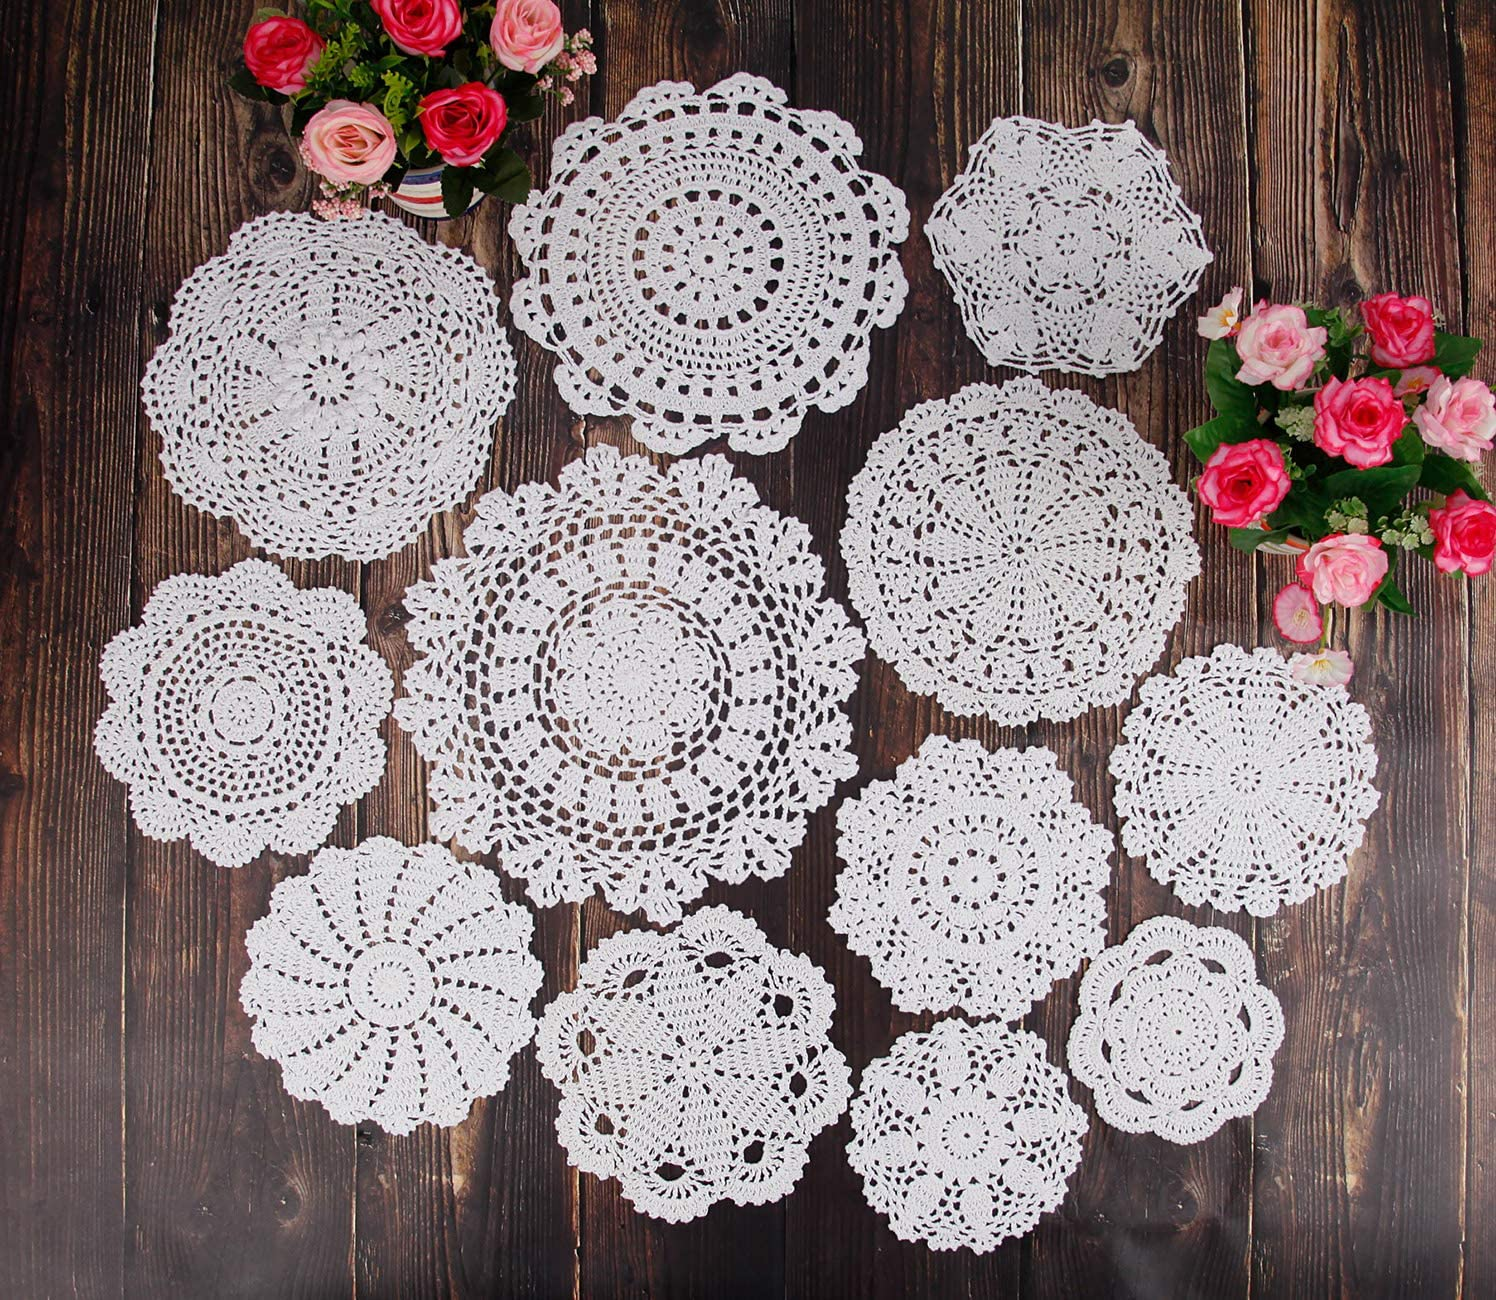 Max High order 72% OFF TOSEEY 12Pcs Handmade Crochet Doilies inches 5-12 White Be Round